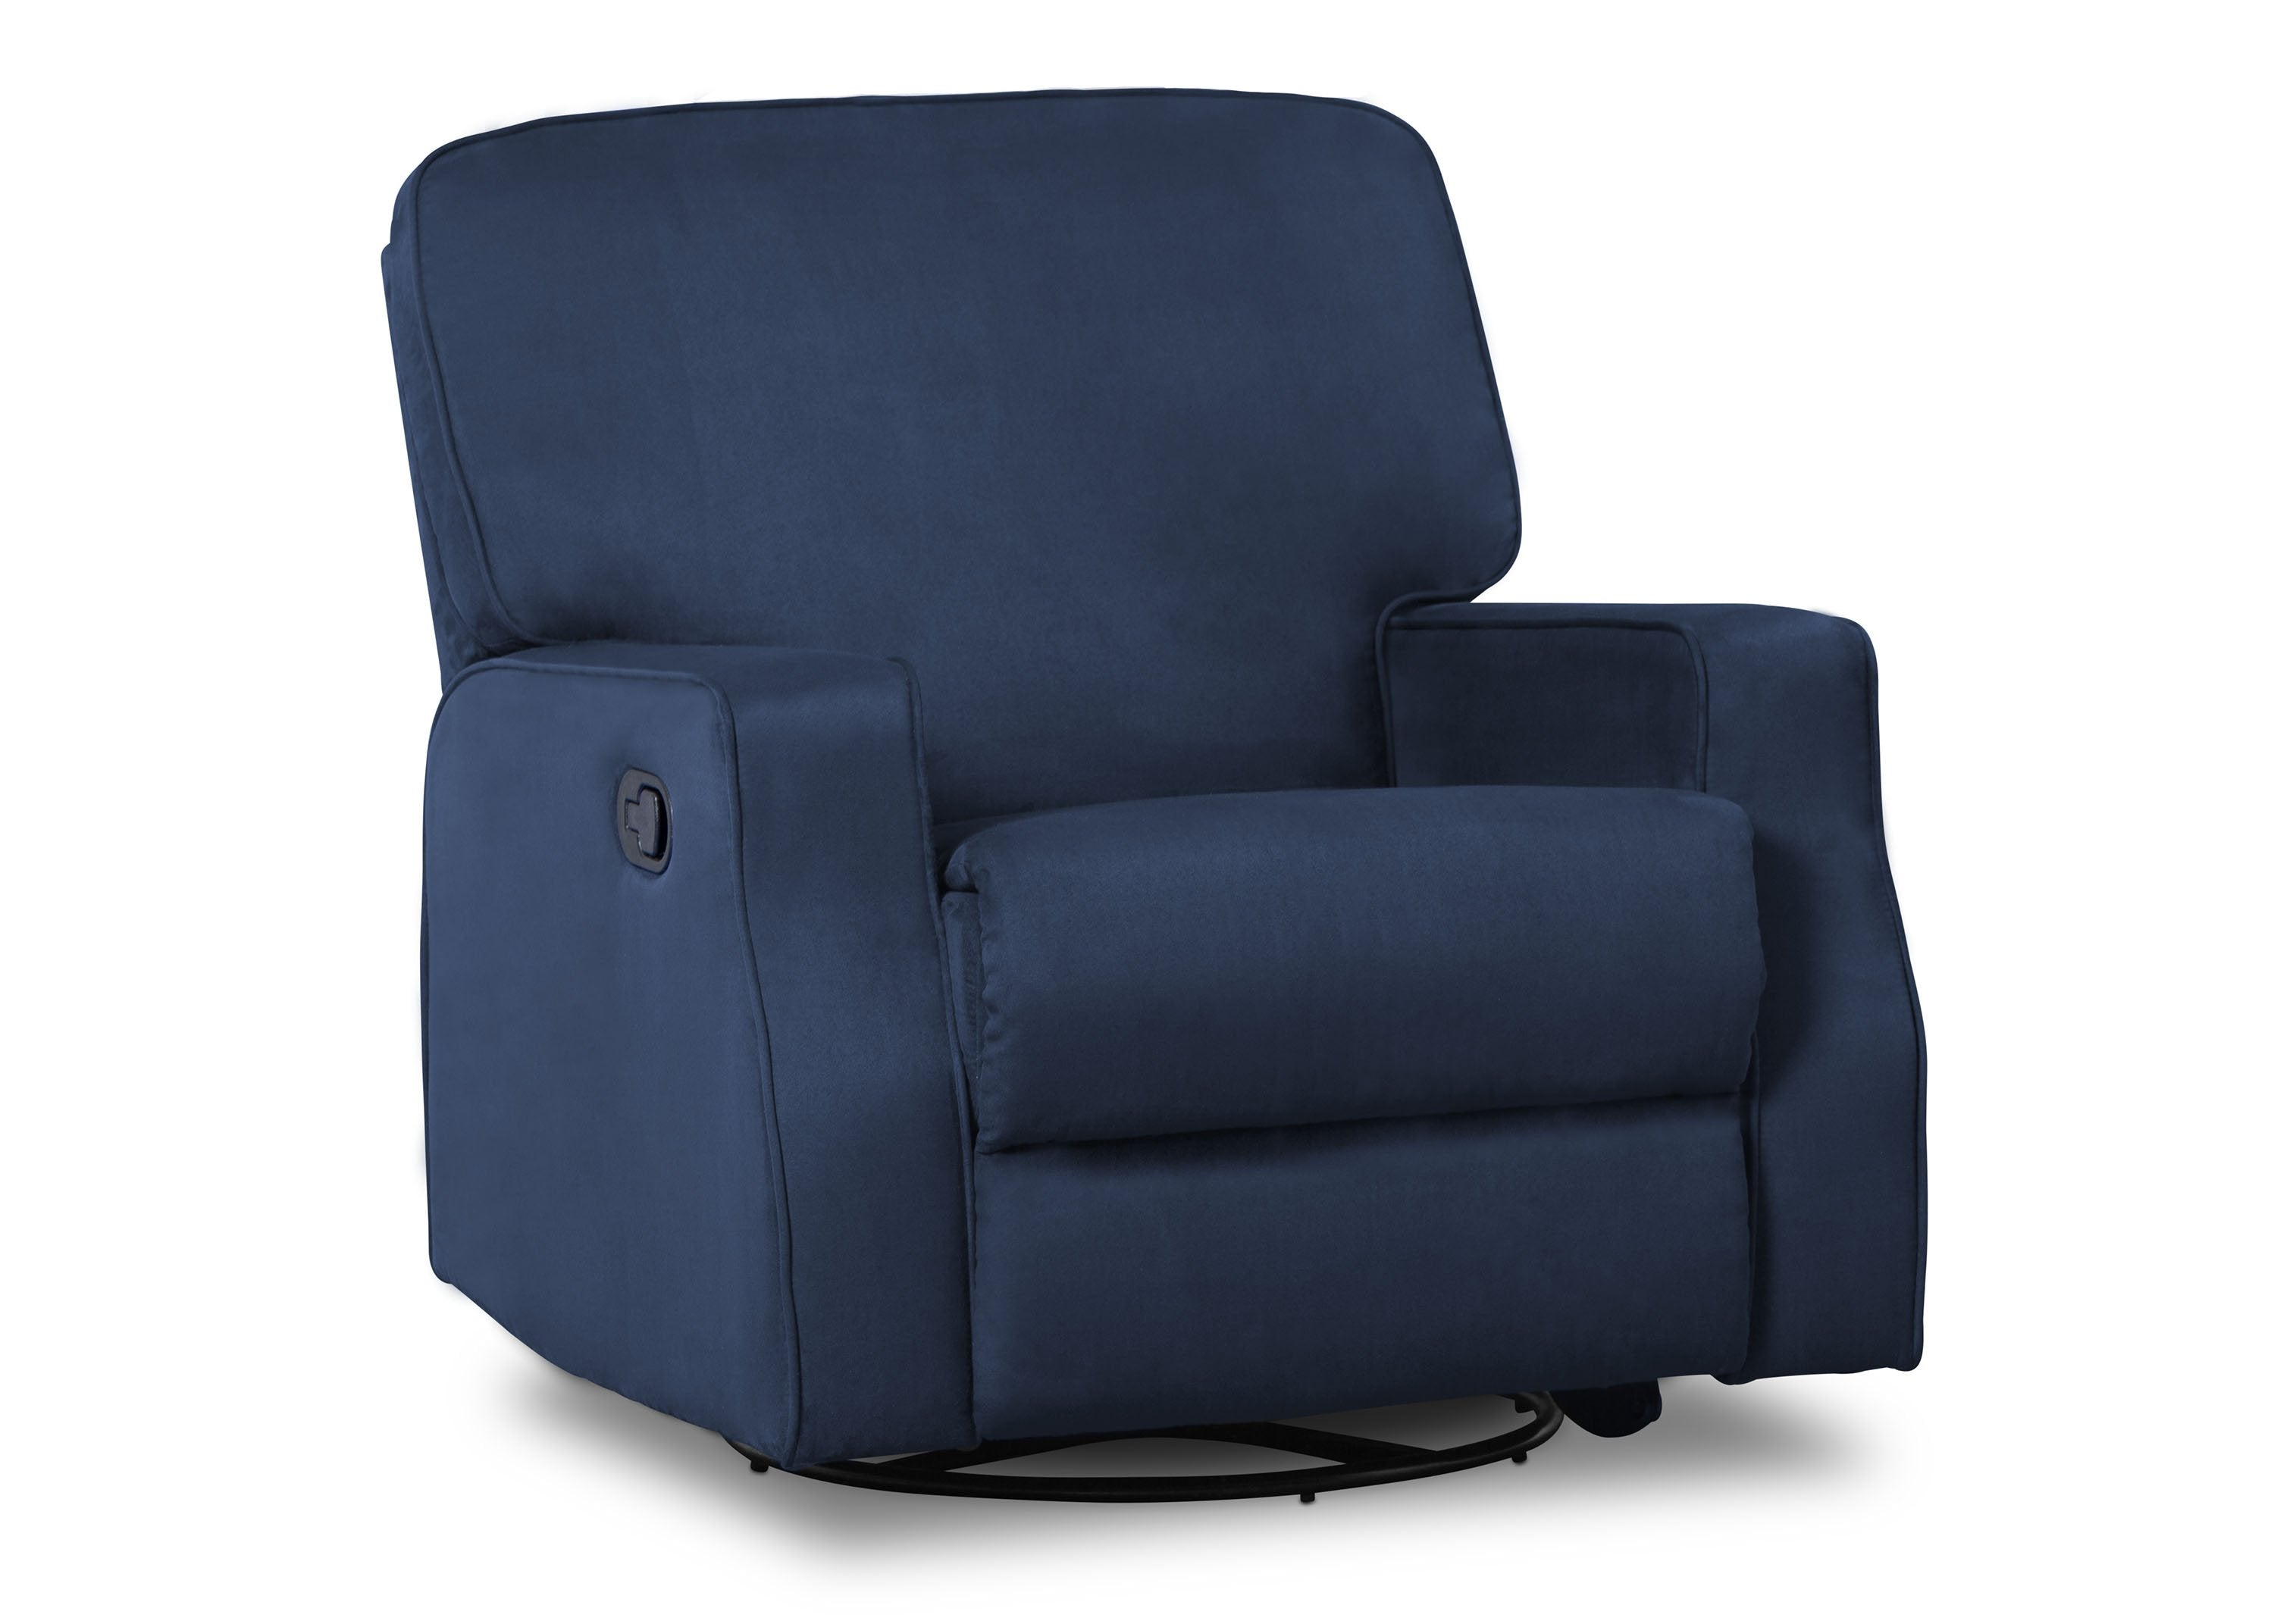 recliners la nz navy recliner boy rocker aspen z lounge hero